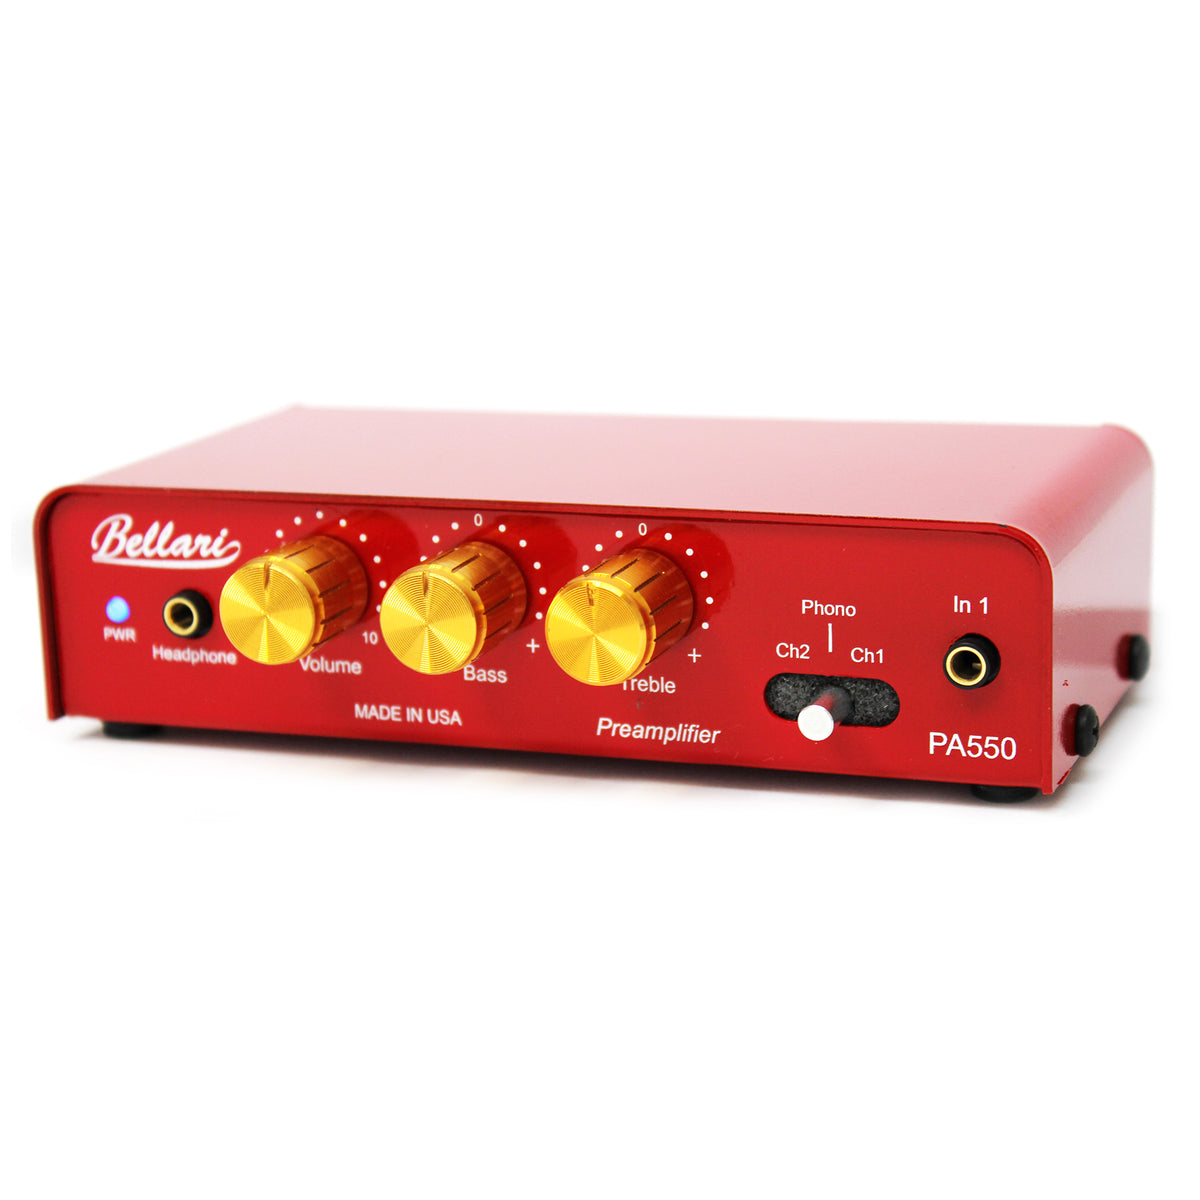 Bellari: PA550 Phono Preamp + Headphone Amp w/ 3 Channels + Tone Control